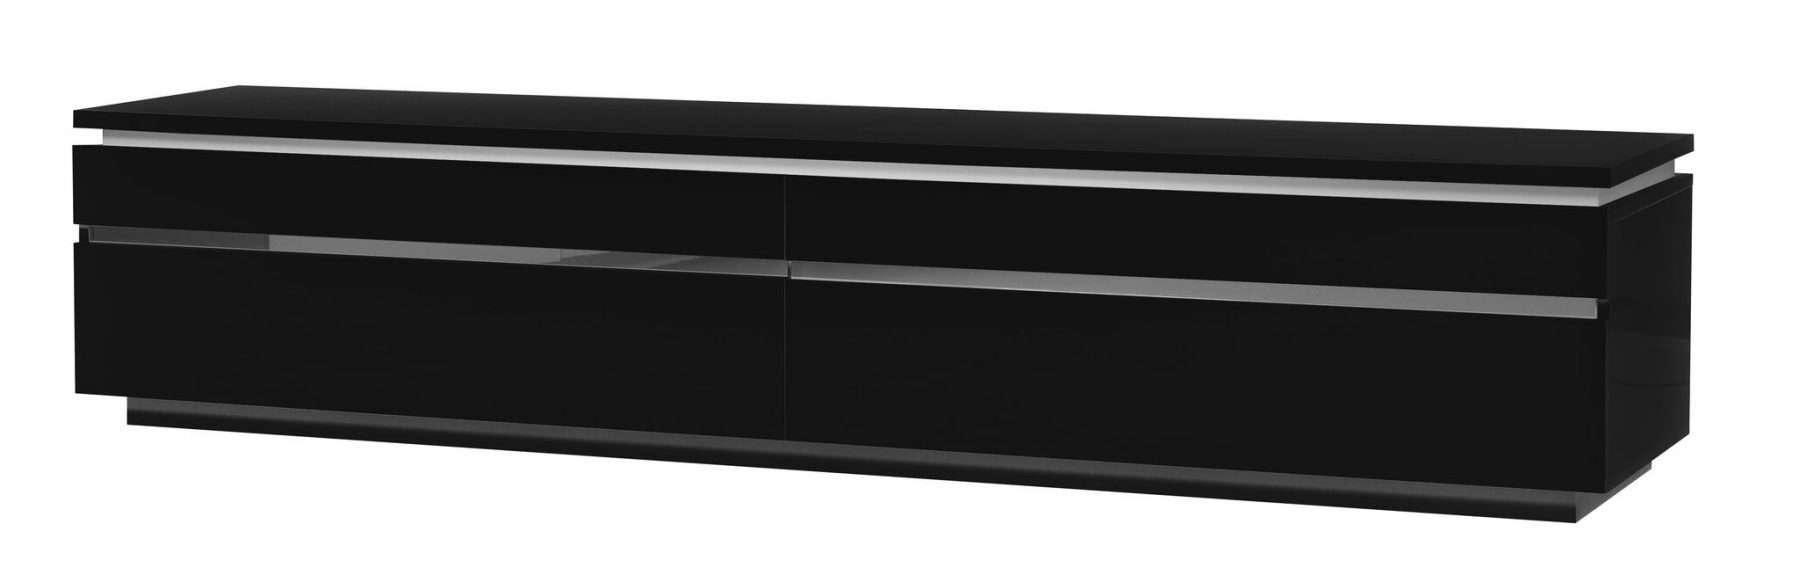 Logan Black Gloss Tv Unit & Lights | Free Delivery | Fads Pertaining To Black Gloss Tv Cabinets (View 15 of 20)